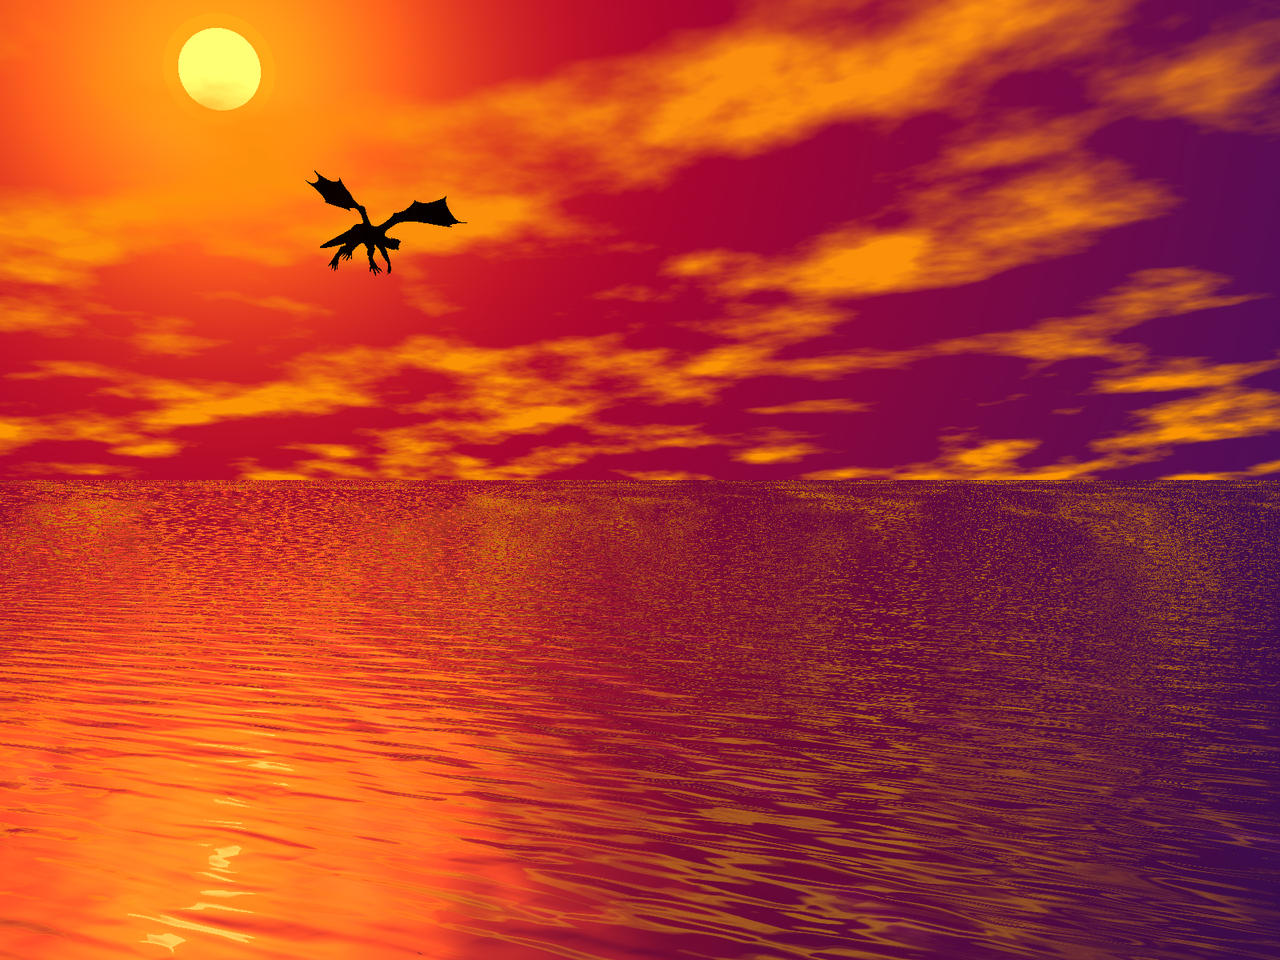 Dragon of sunset by Linnunlento on DeviantArt |Dragons And Sunsets